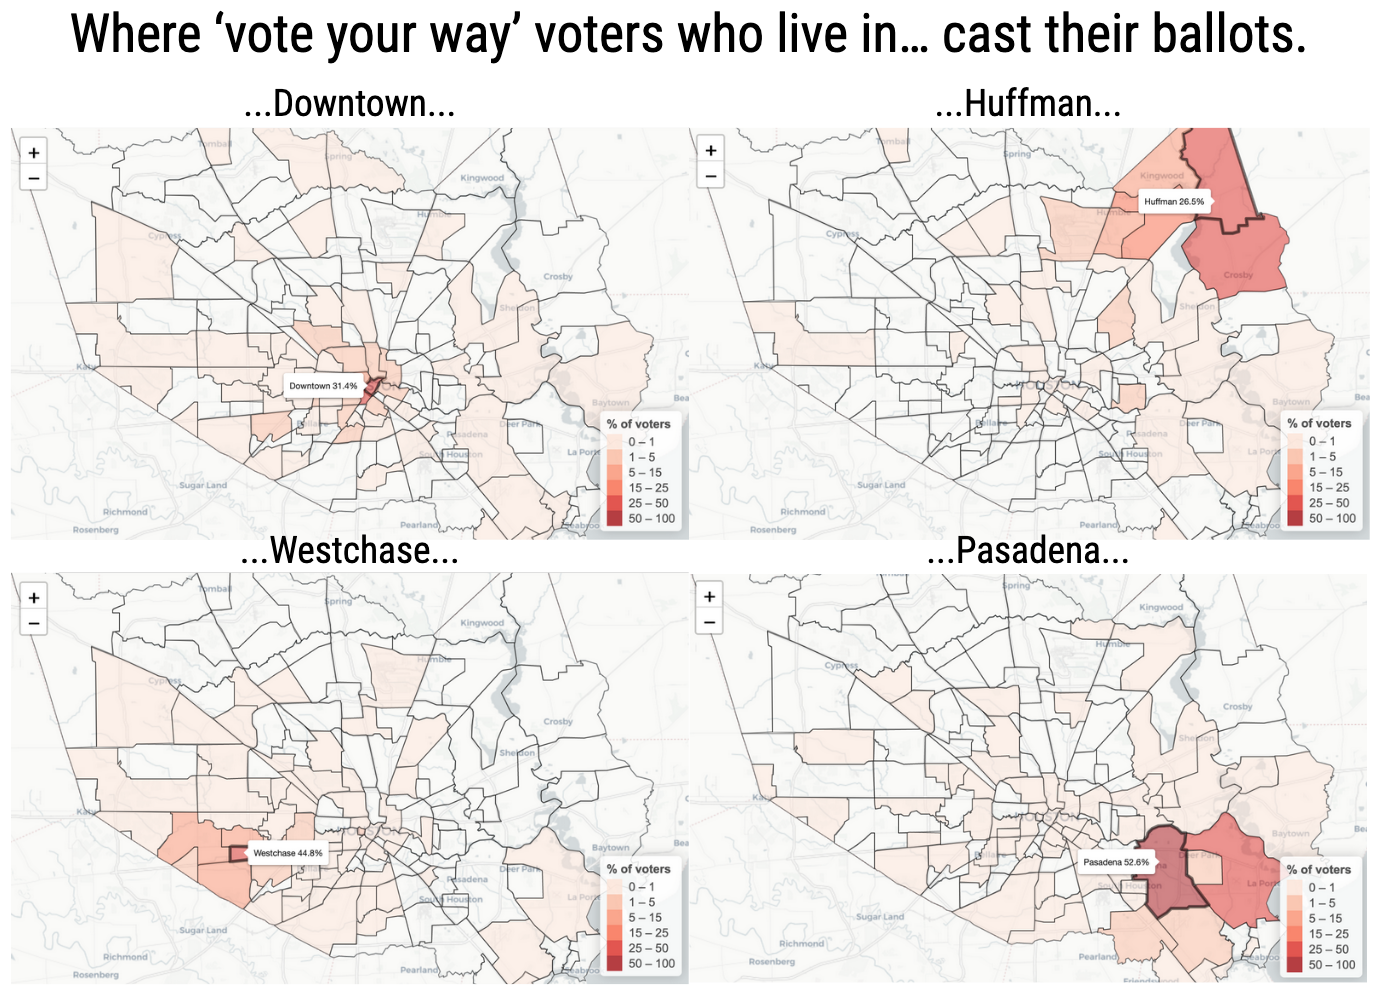 harris county voter your way voters by neighborhood